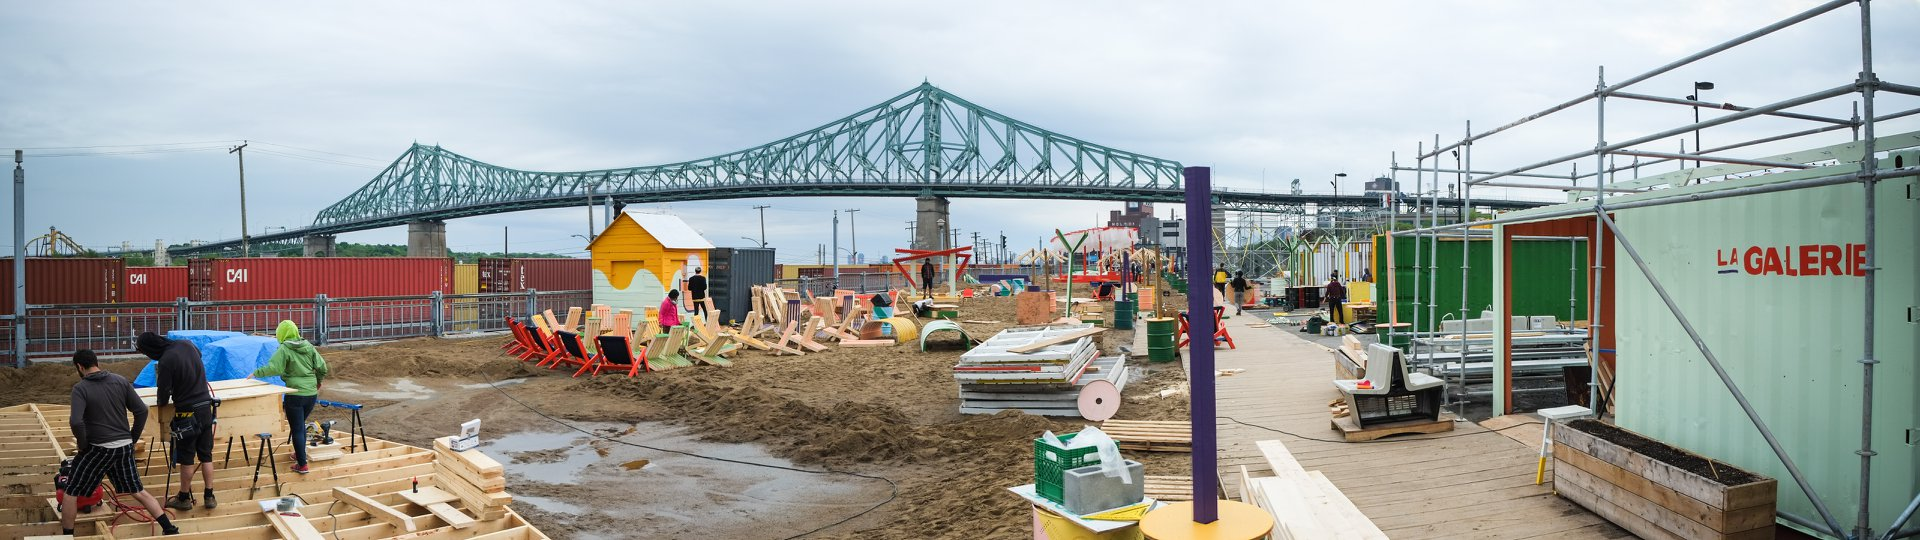 Chantier 2018 - Photos: Steven Porotto & Charles-Olivier Bourque